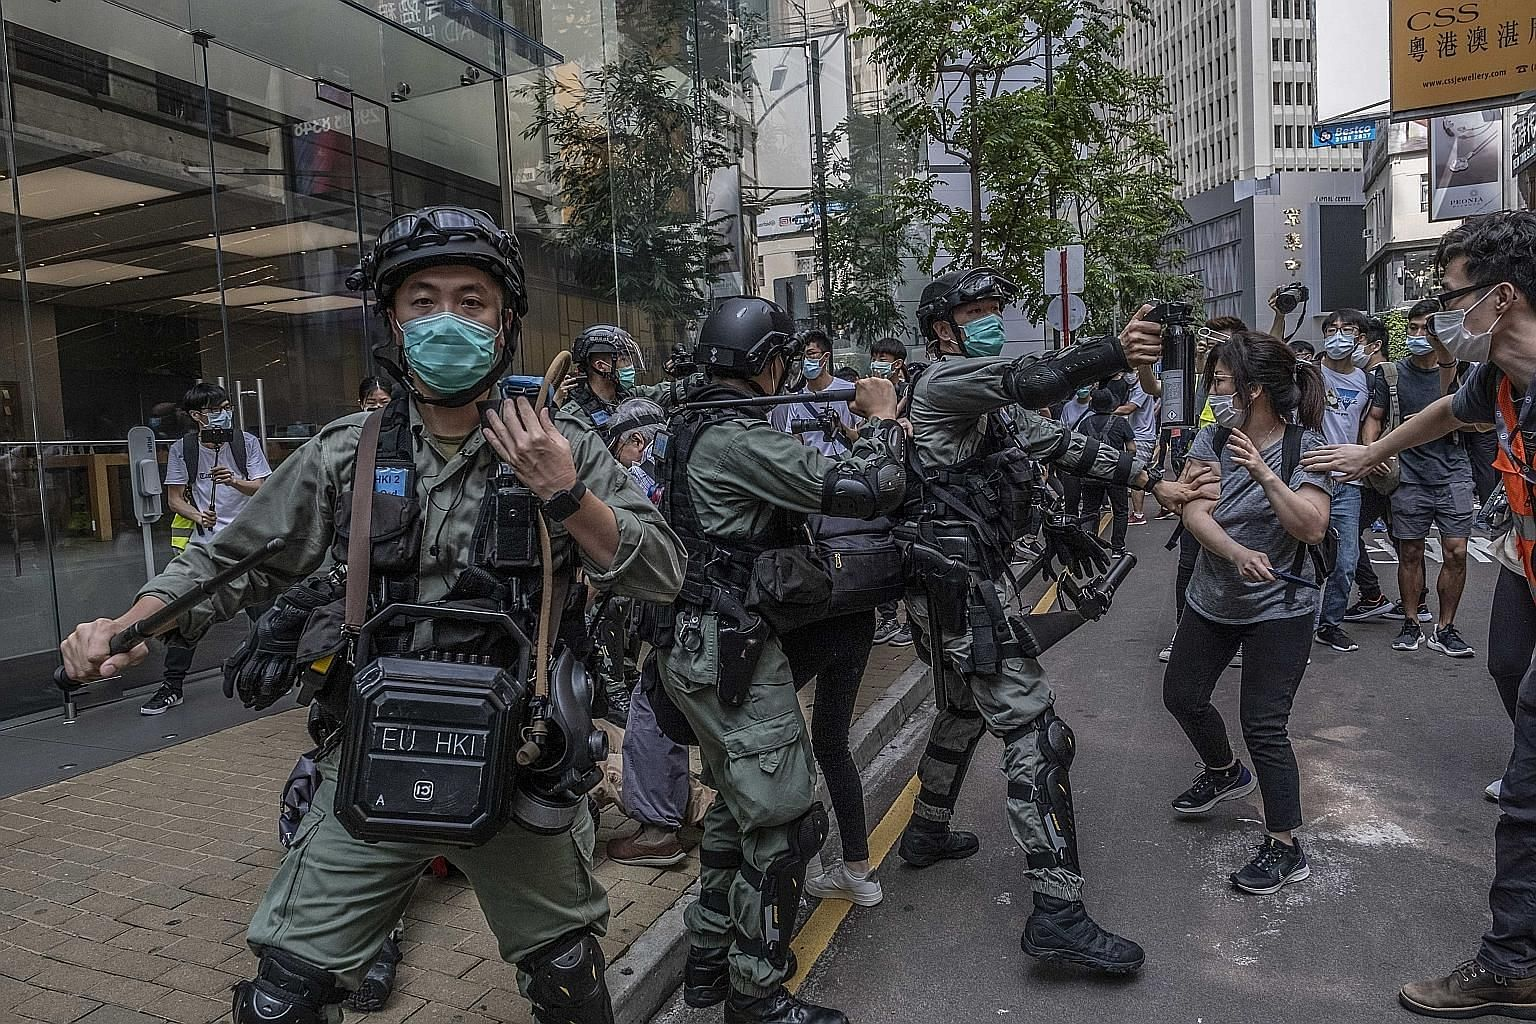 Hong Kong riot police clashing with protesters last month. Many questions have arisen over how the new national security law will be administrated, enforced and adjudicated. How this is put into practice has stoked great fear and opposition in the ci